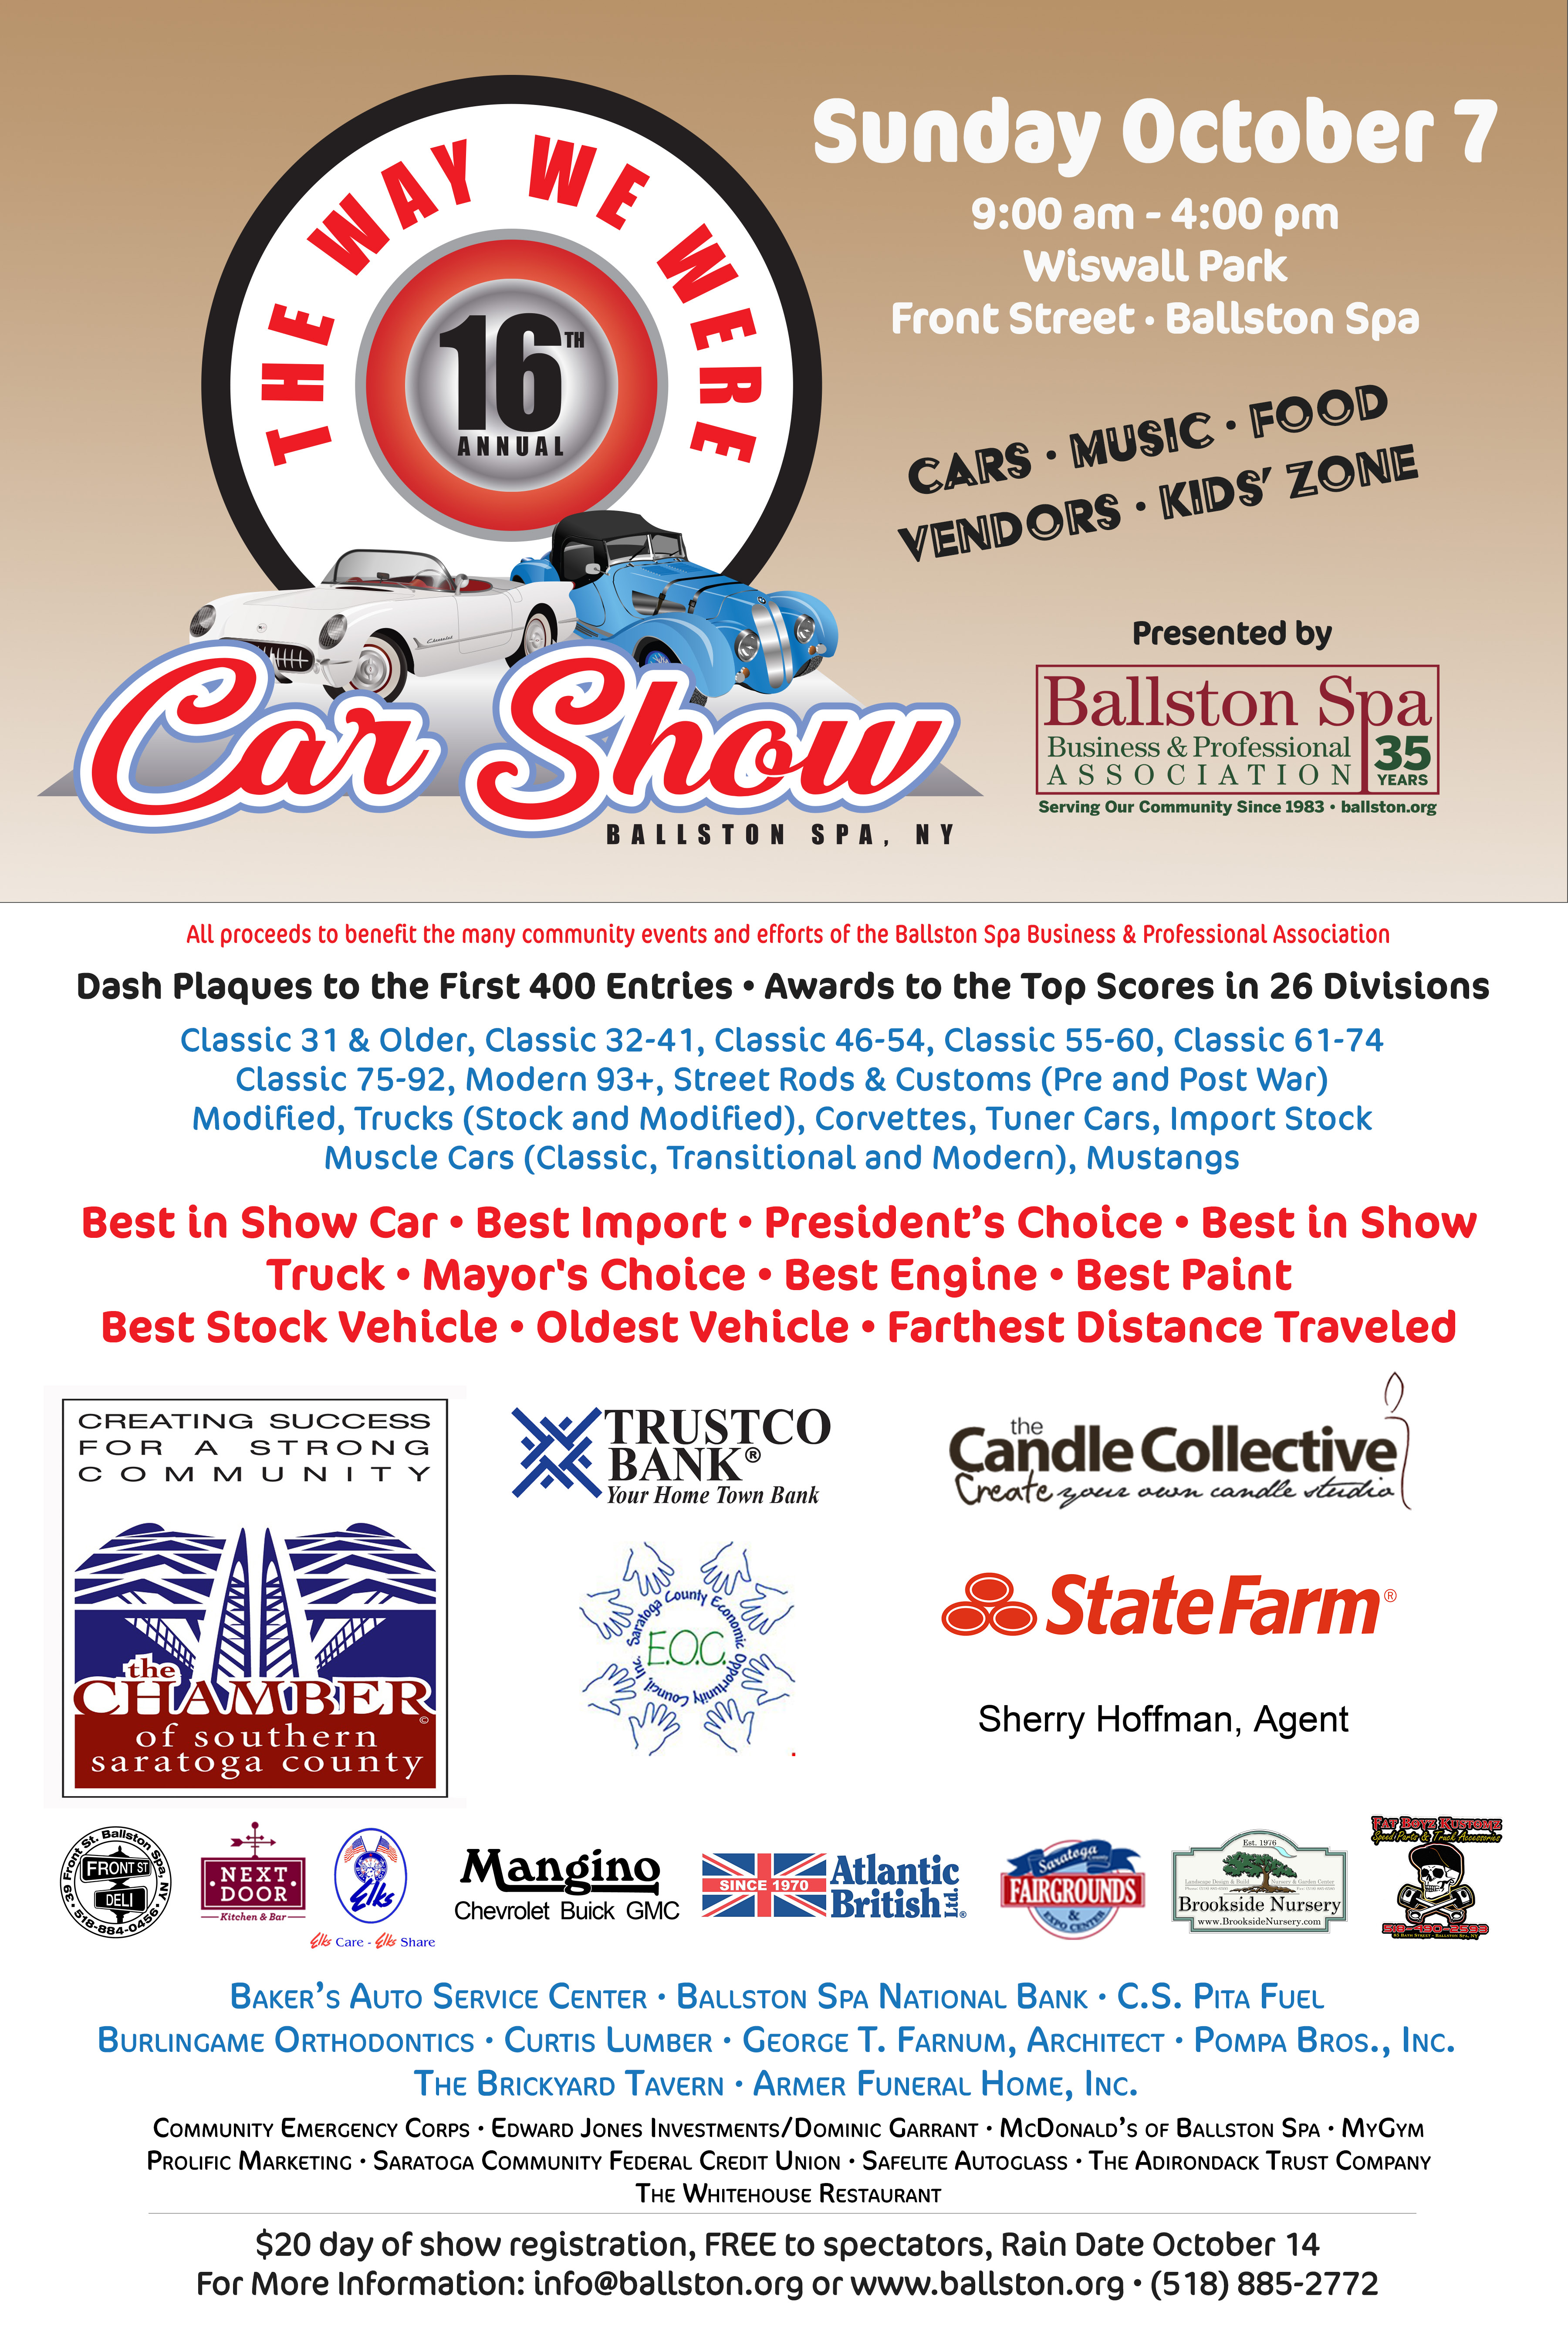 The Way We Were Car Show Archives Ballston Spa Business - Sutherland chevrolet car show